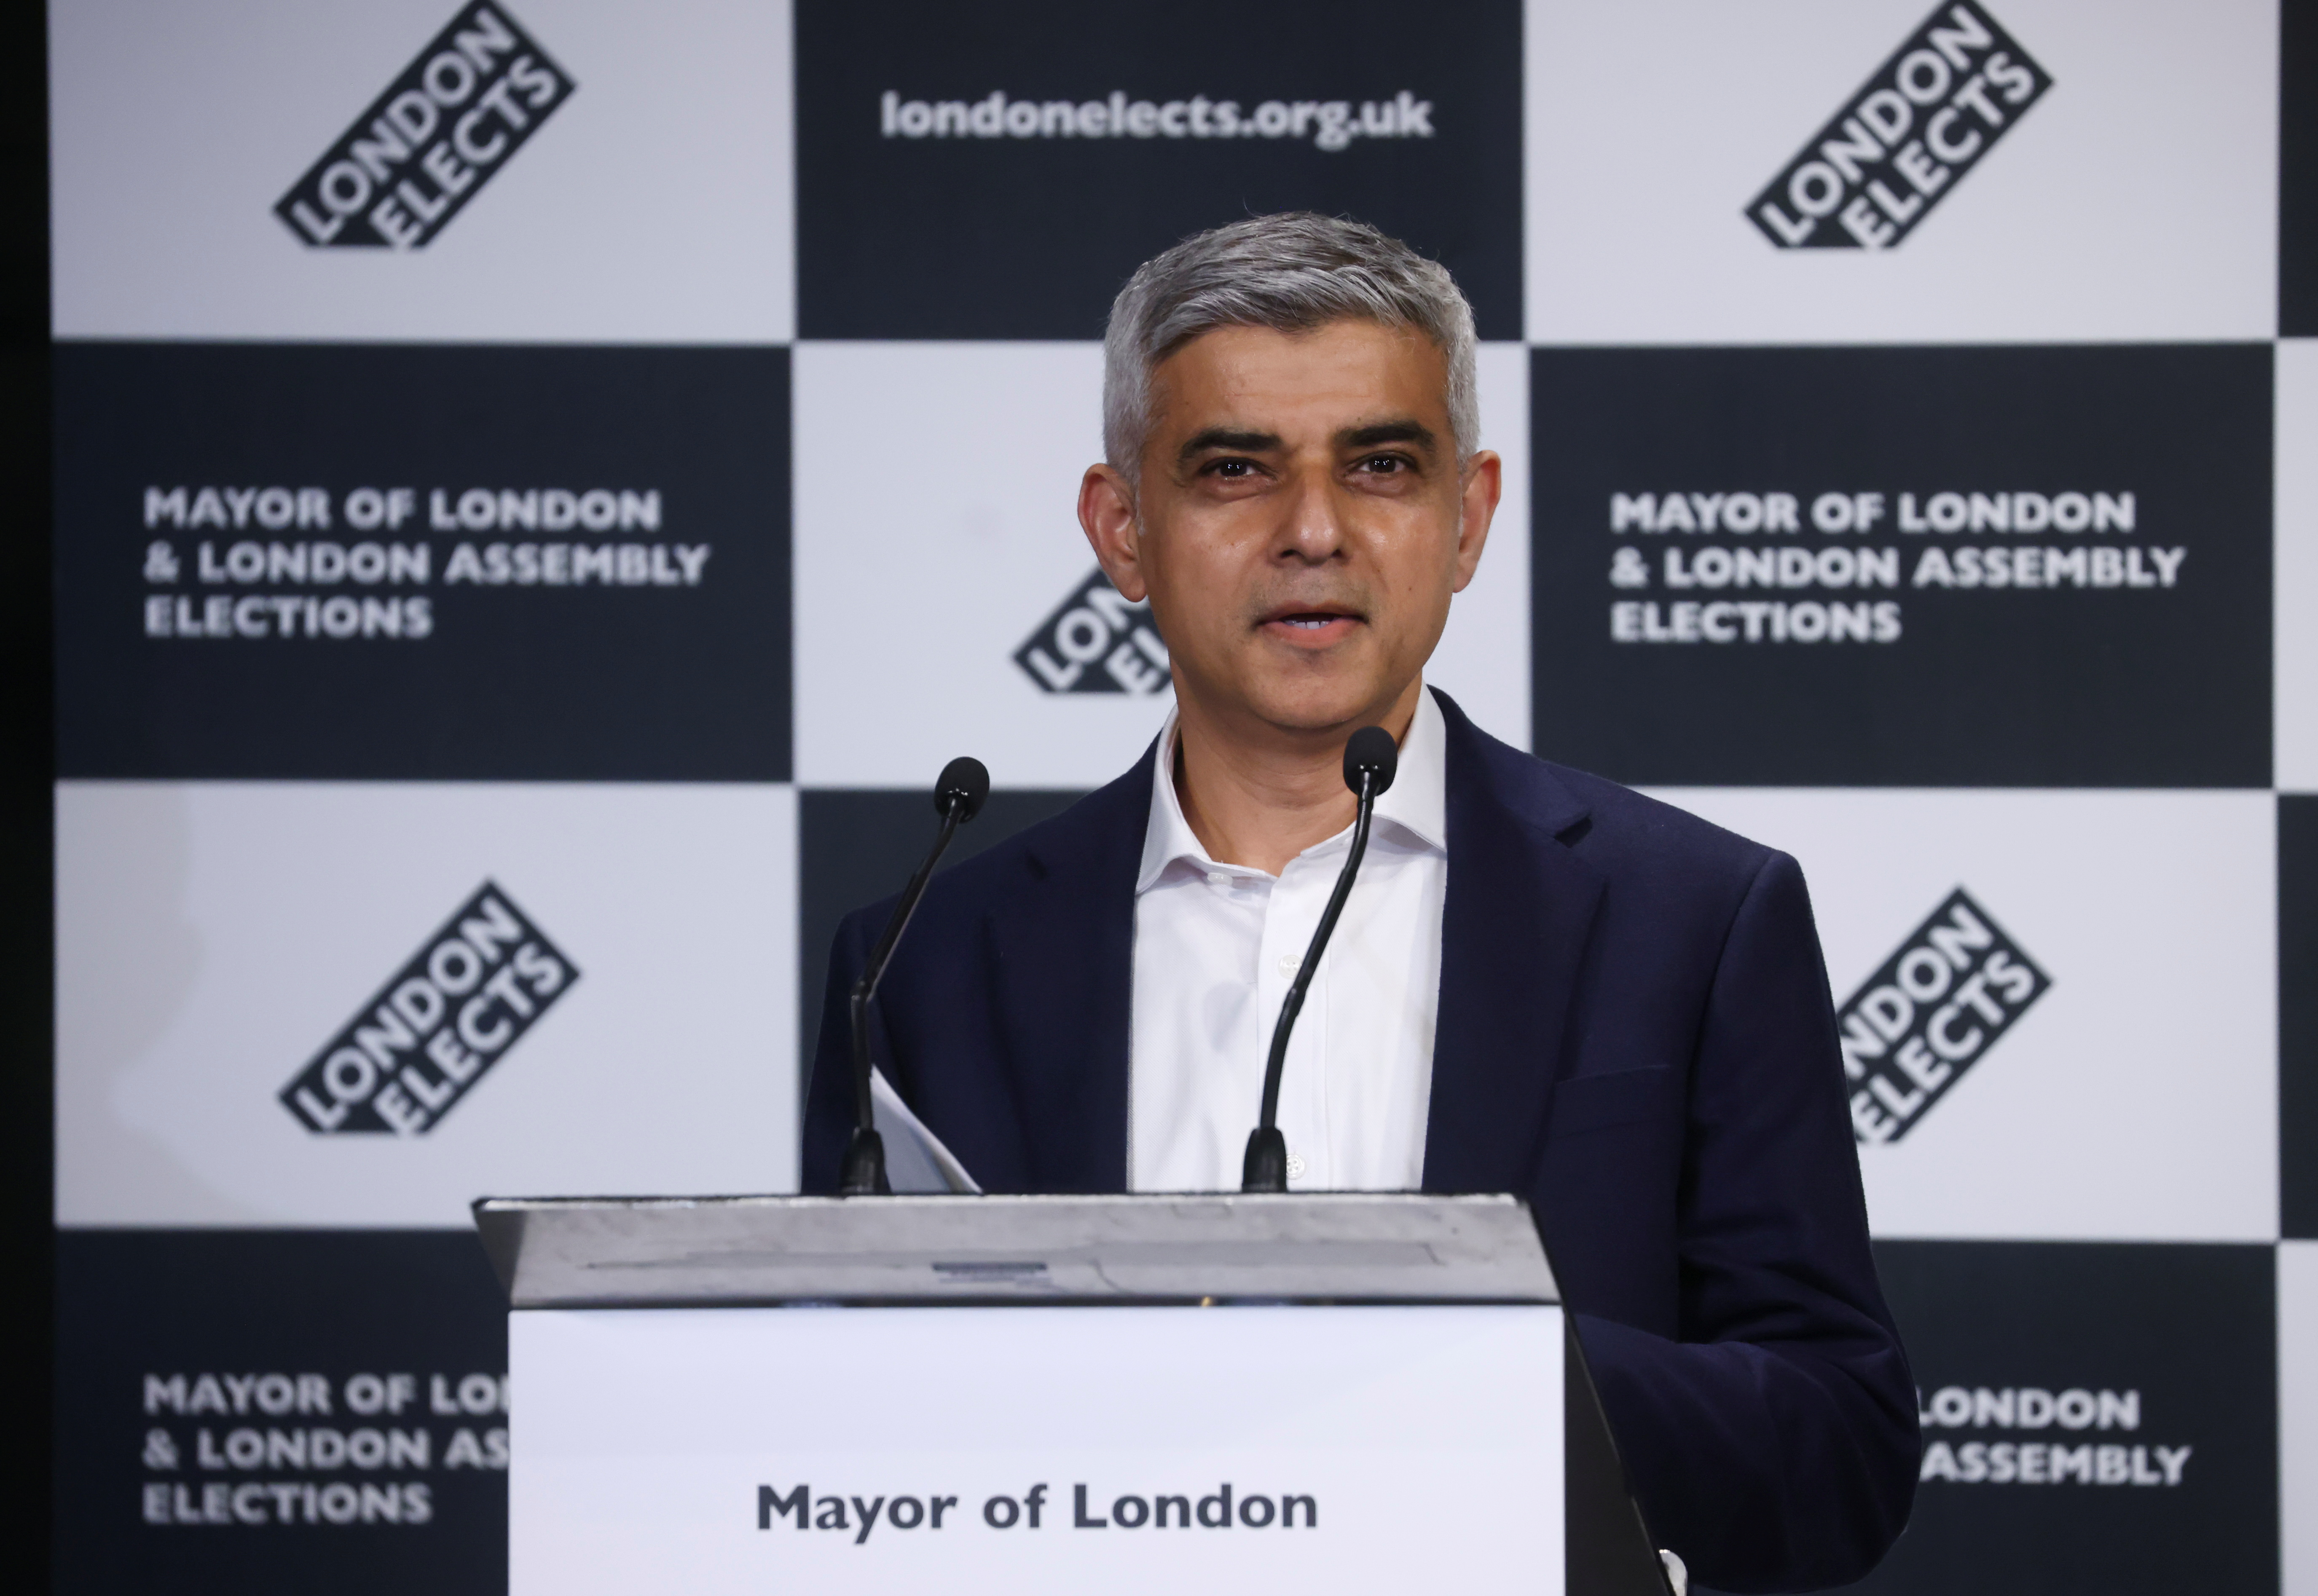 Mayor of London Sadiq Khan speaks after being re-elected in the London mayoral election, at the City Hall in London, Britain, May 8, 2021. REUTERS/Henry Nicholls